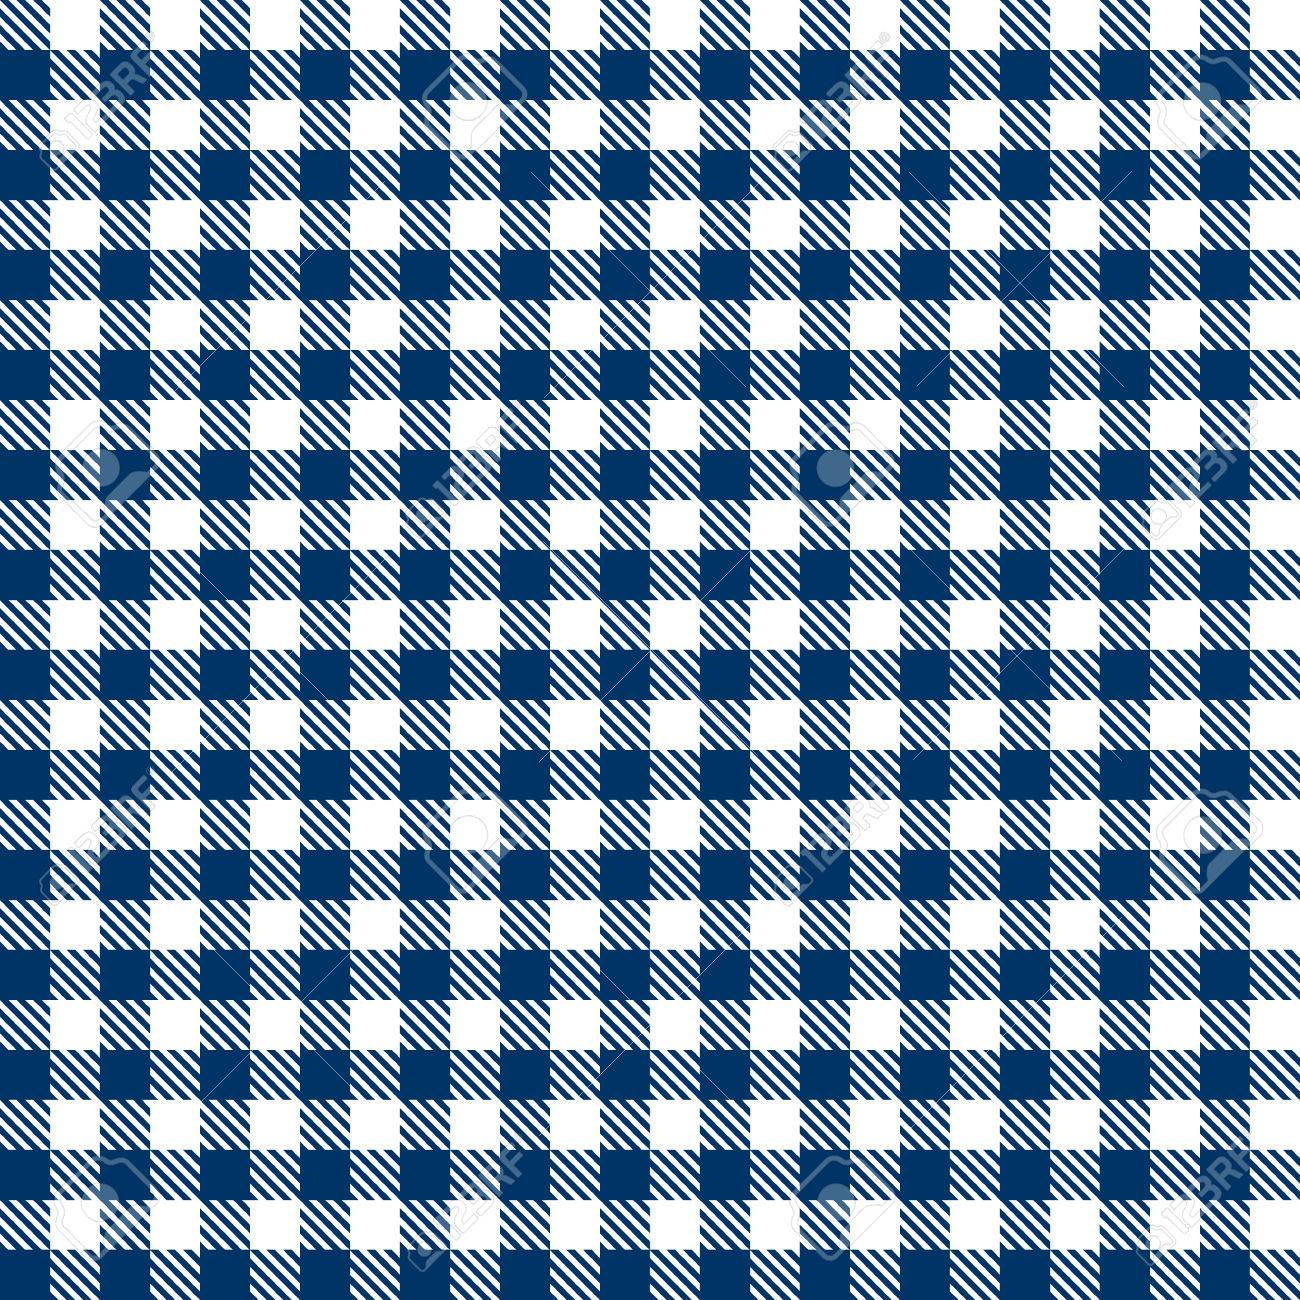 Checkered Tablecloths Patterns BLUE Endlessly Stock Vector   41386066